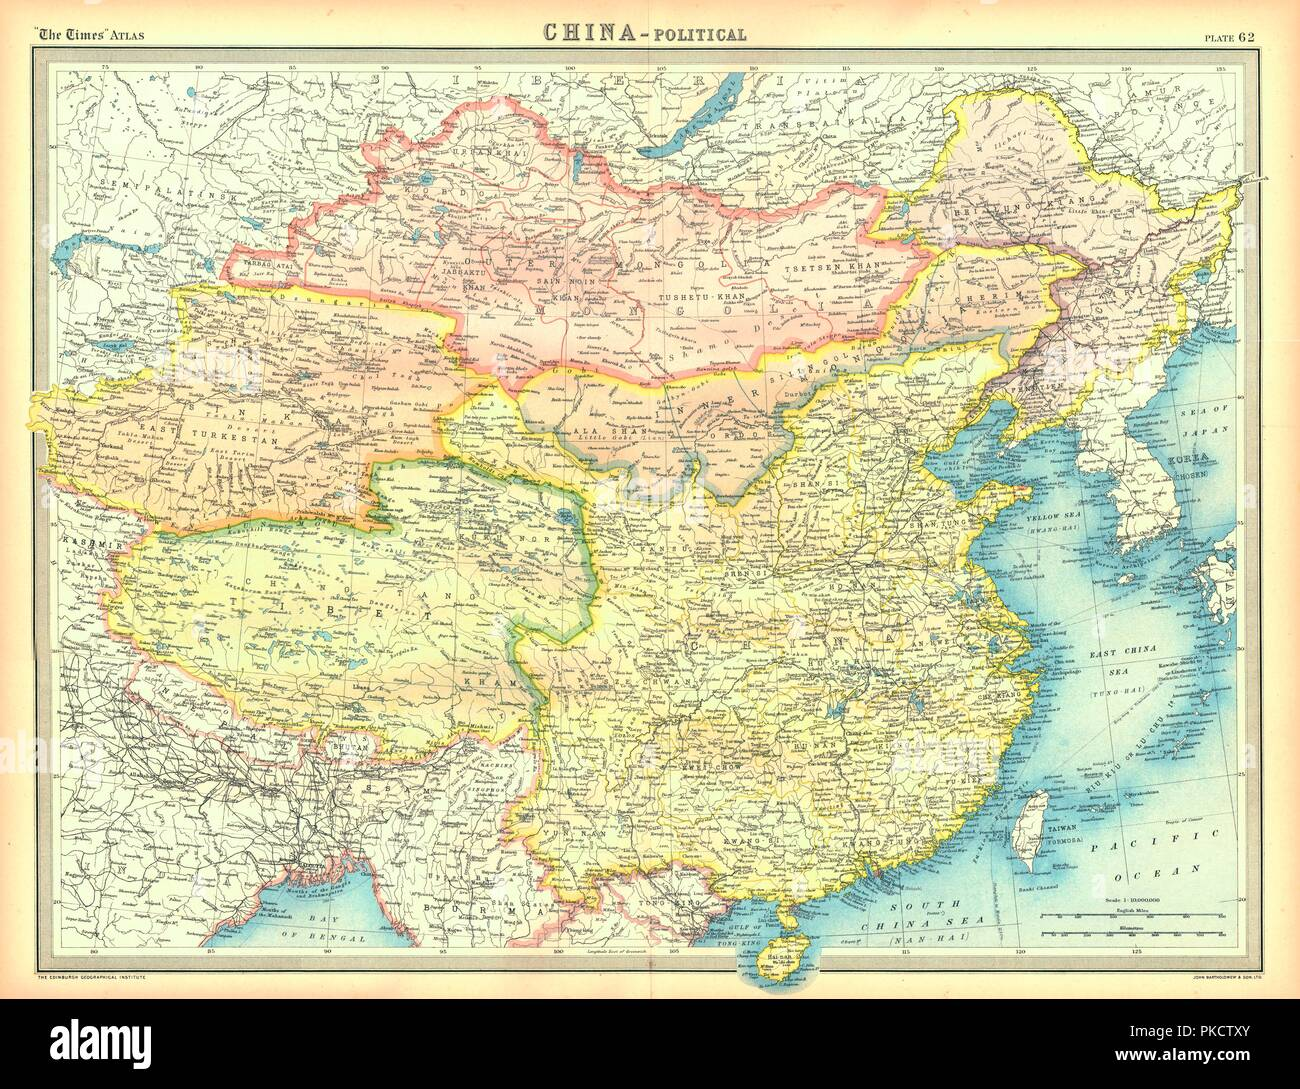 Political map of China. Map showing China, Mongolia, East Turkestan, Tibet and the Korean peninsula. Plate 62 from The Times Atlas. - Stock Image